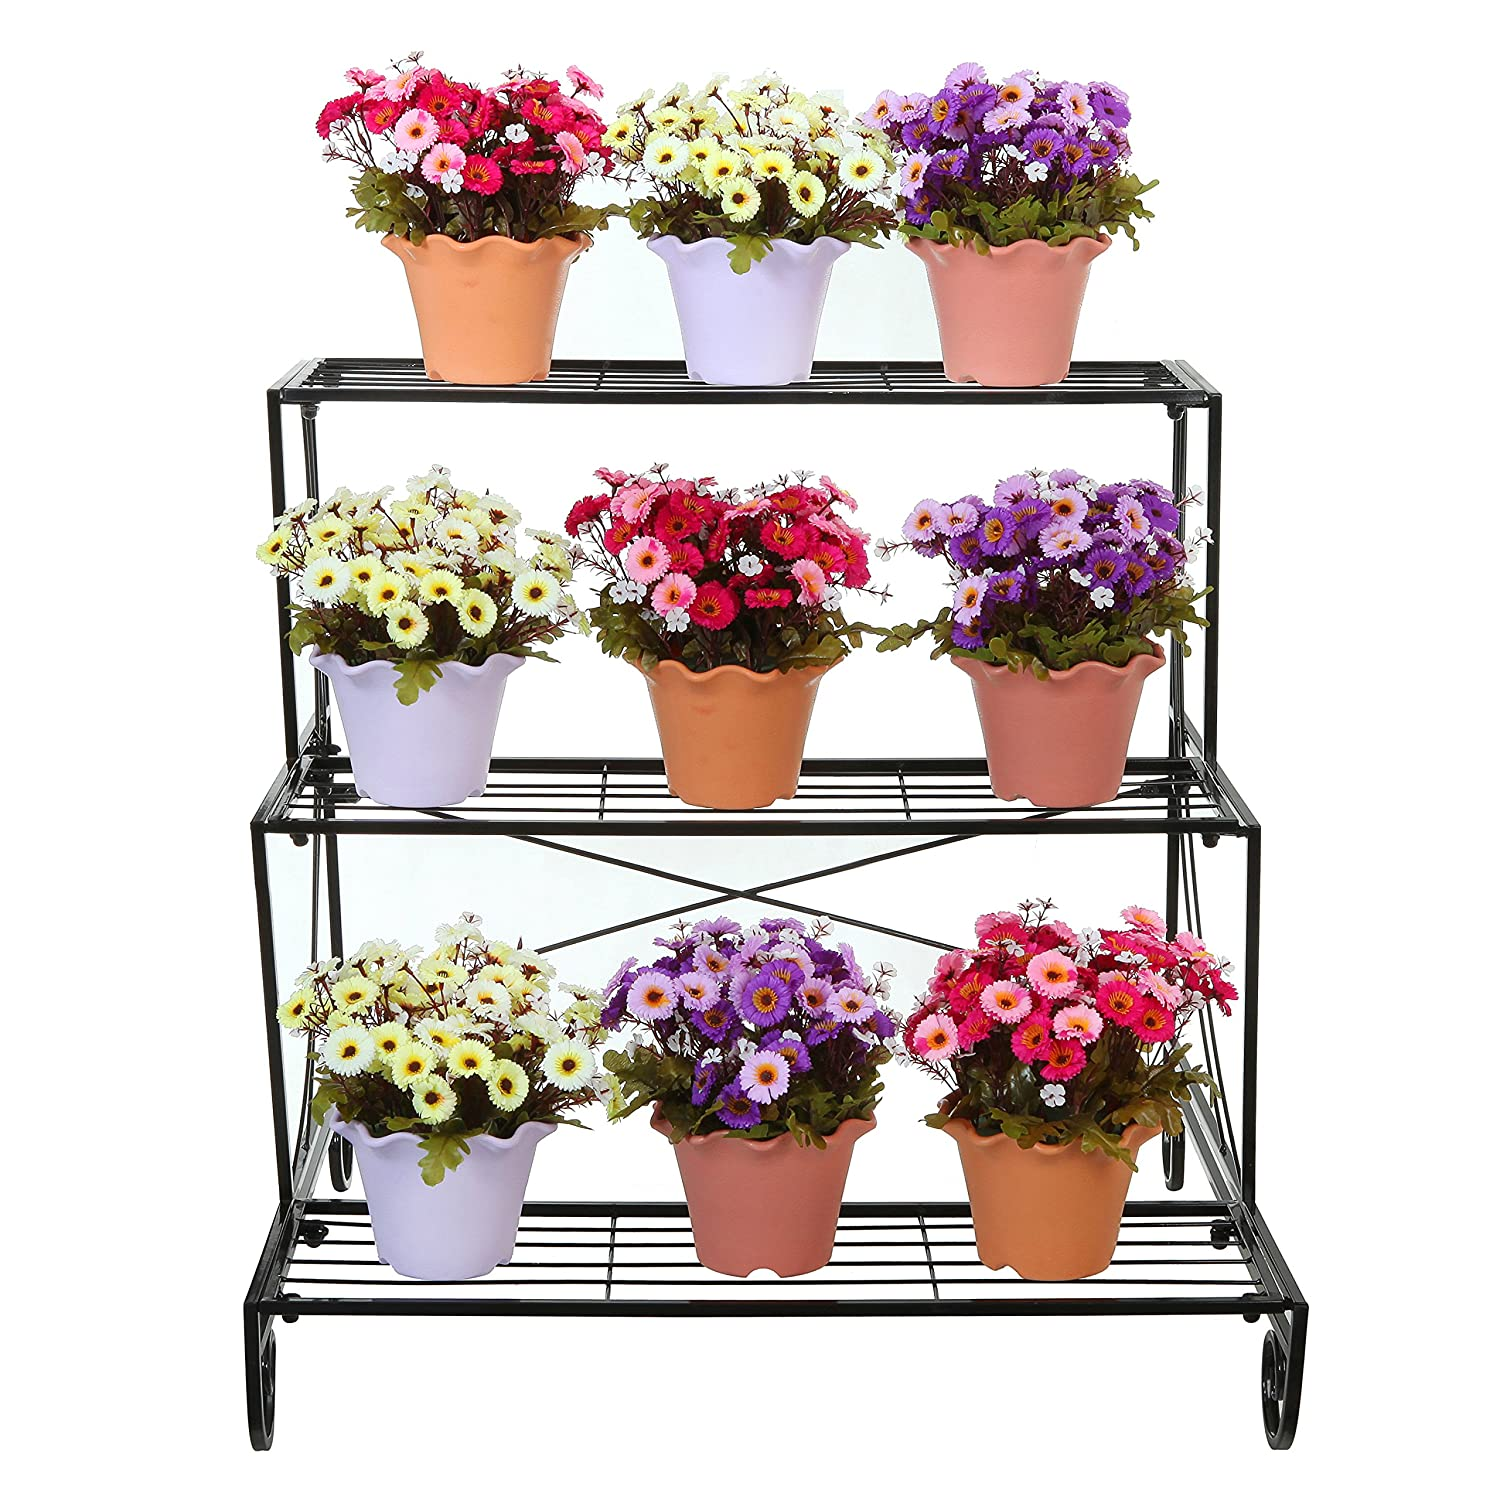 Three Tier Flower Pots 3 Tier Decorative Black Metal Plant Stand Planter Holder